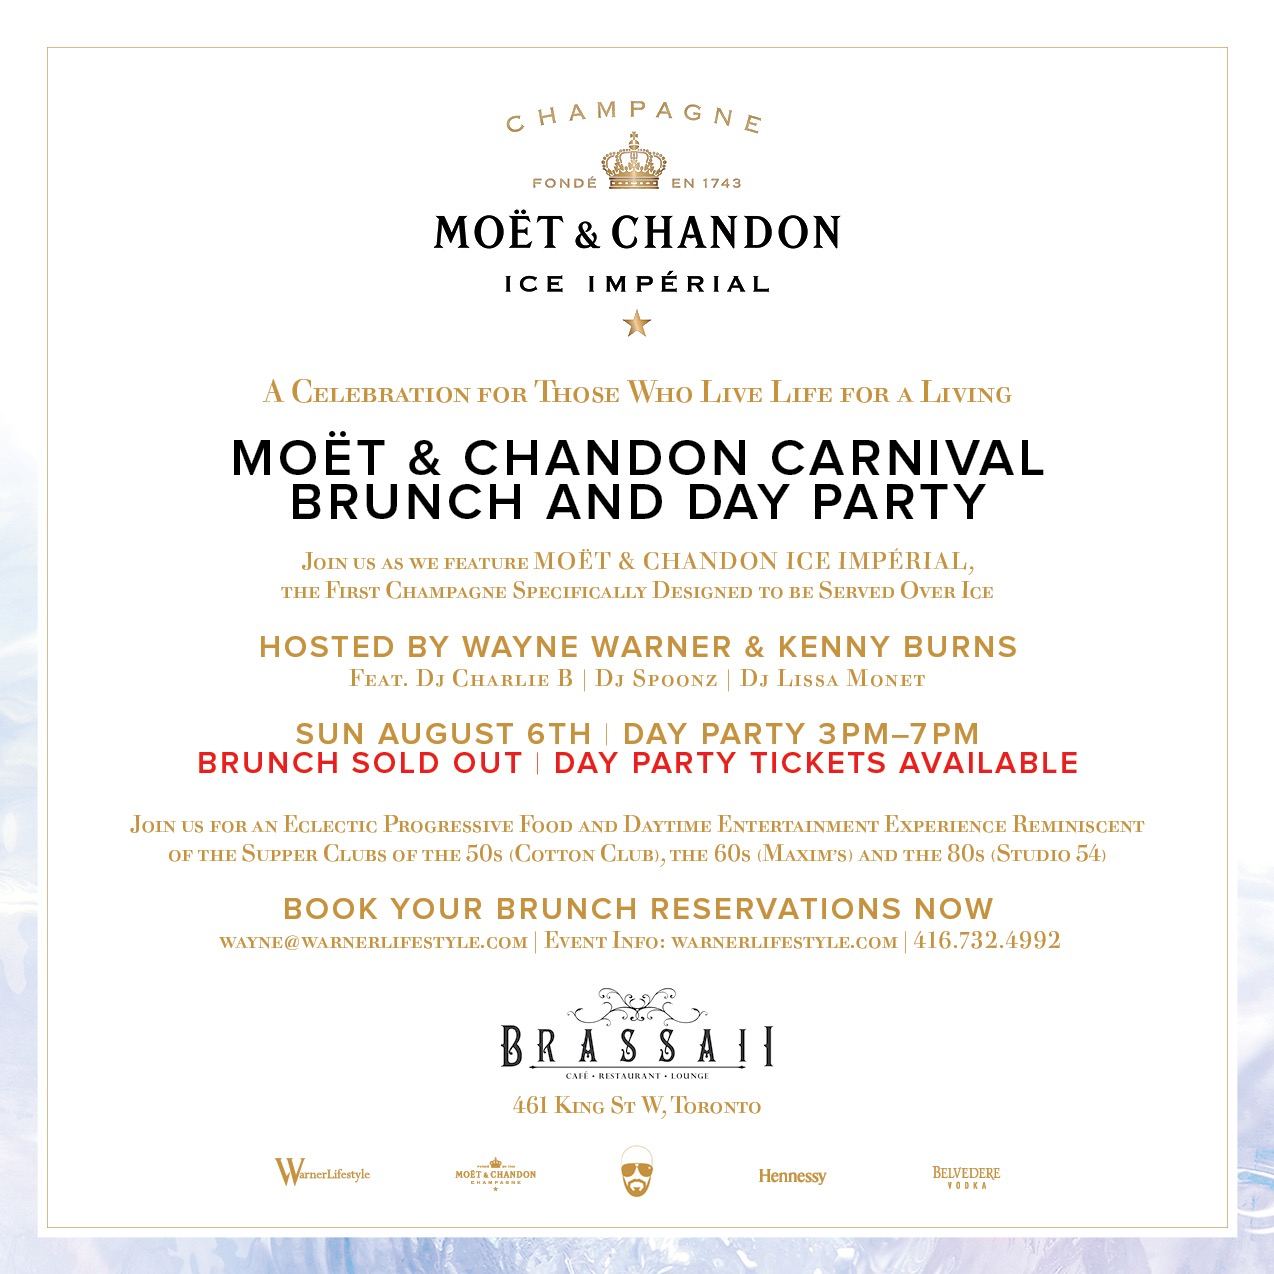 MOET & CHANDON CARNIVAL BRUNCH & DAY PARTY